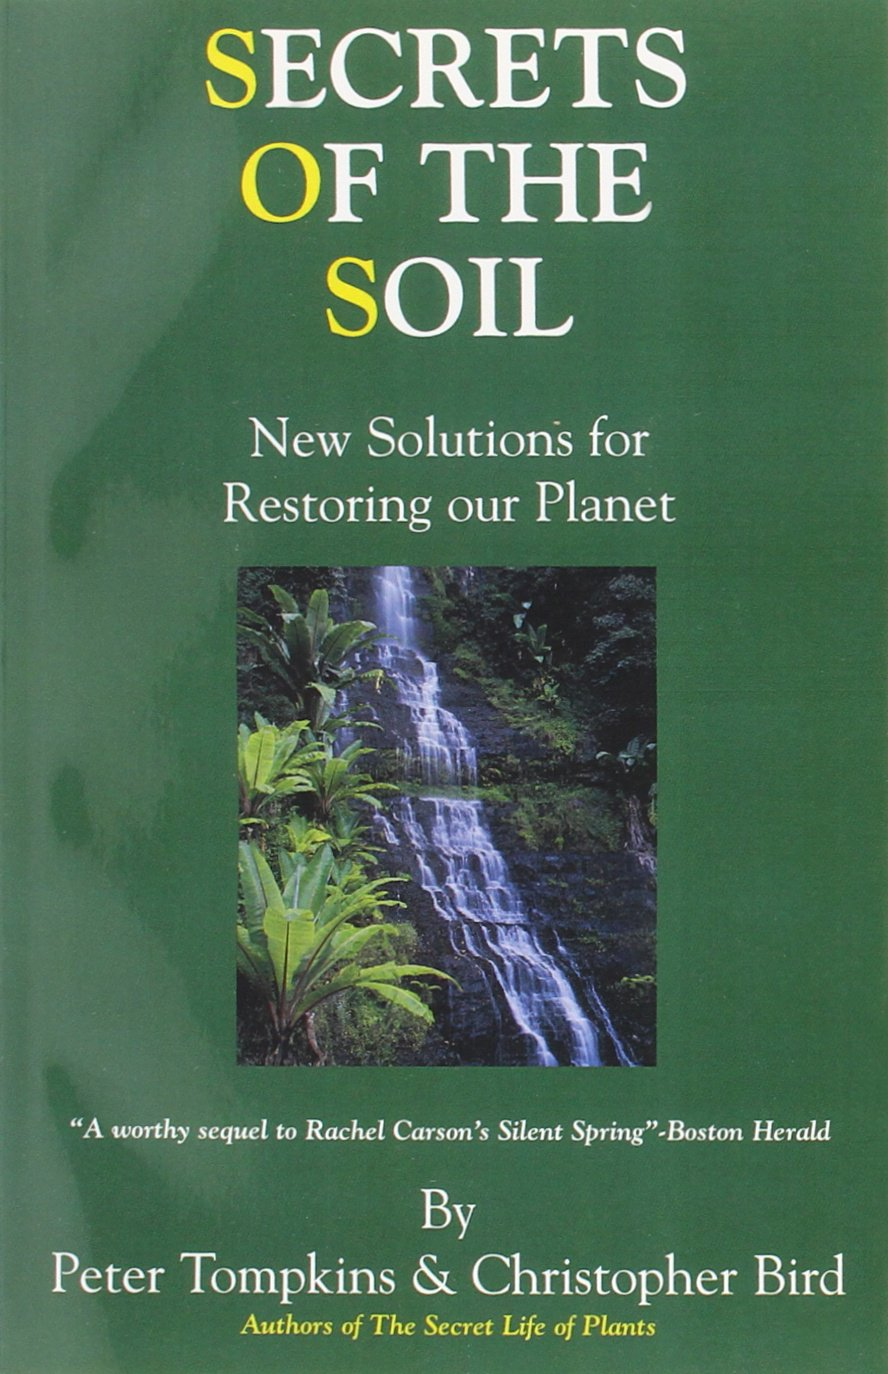 secrets of the soil: new solutions for restoring our planet - By Peter Tomkins and Christopher BirdTompkins & Bird is a compendium on the science and metaphysics of soil, agriculture, and the environment. Going beyond the rudiments of biology, the authors demonstrate that the inherent life force woven through all plants, stones, soil, water, and air is central to our survival, and our relationship to the soil is of vital importance to our future. You will not find this kind of valuable information in a textbook. It will change your life 422 pagesQuote: A single microbe reaching maturity and dividing within less than half an hour, can, in the course of a single day, grow into 300 million more, and in another day to more than the number of human beings than have ever lived.